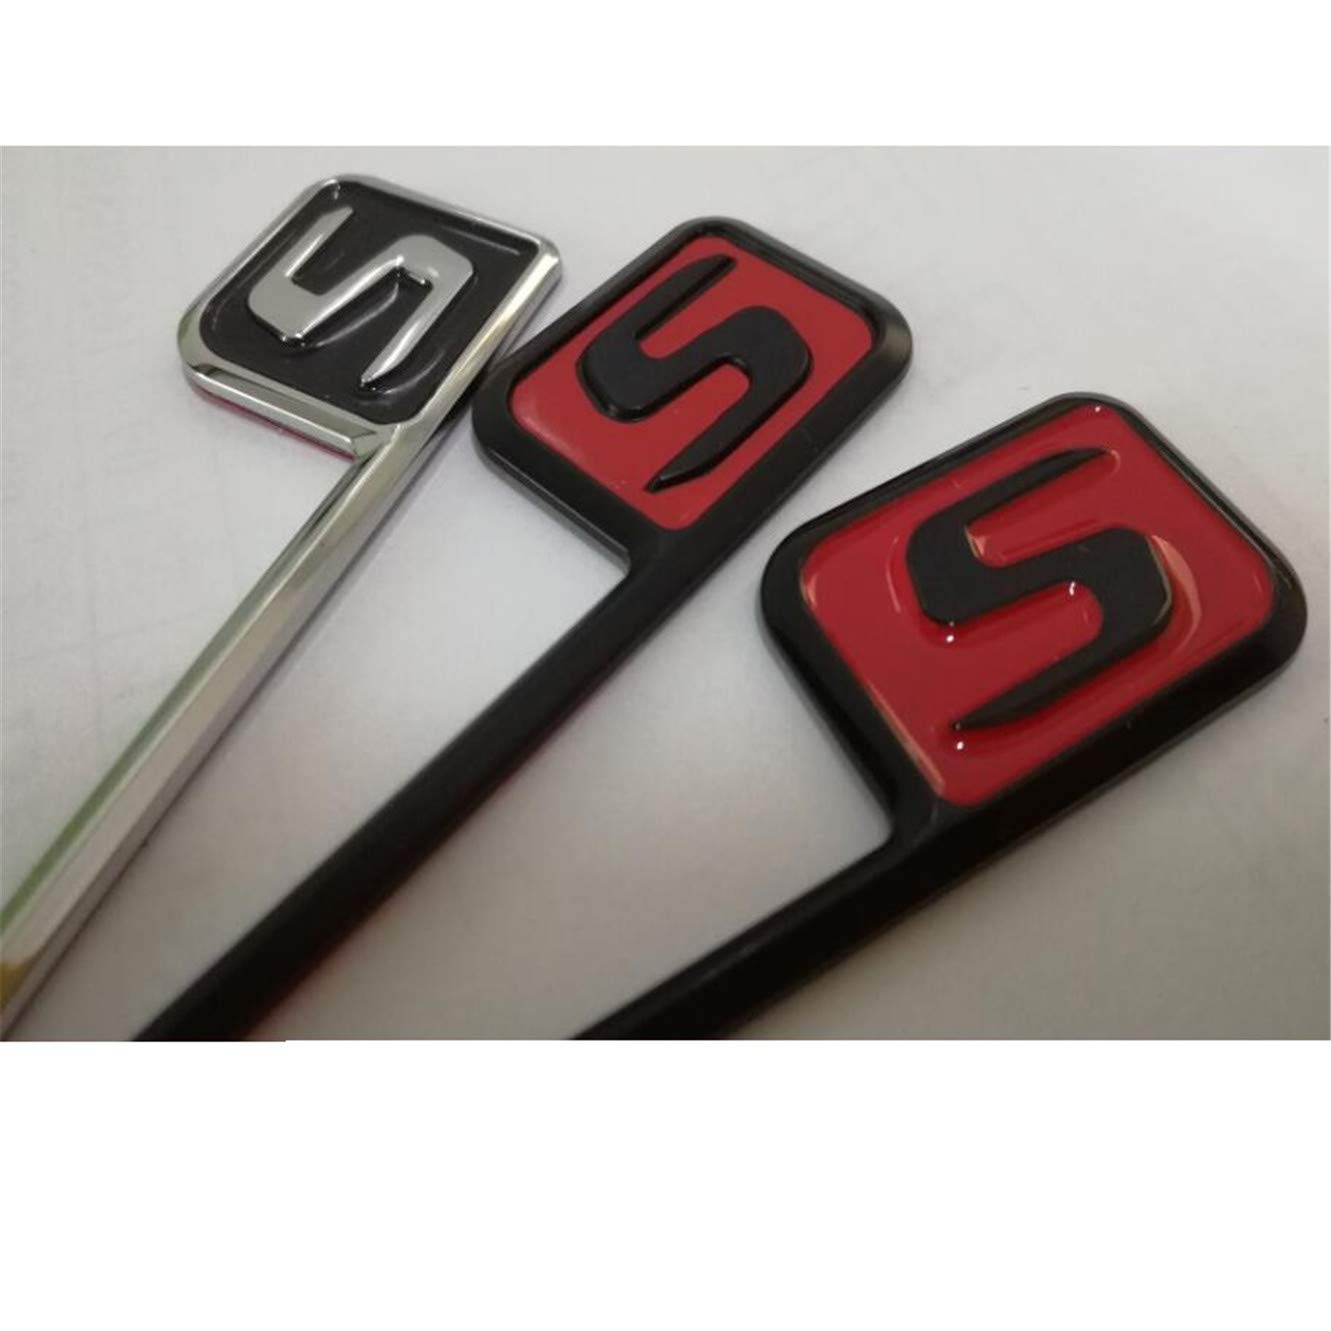 Emblema cromato Black Red Letters S Trunk Lid Badges Emblema Badge C63s E63s CLS63s S63s GLE63s GLC63s AMG